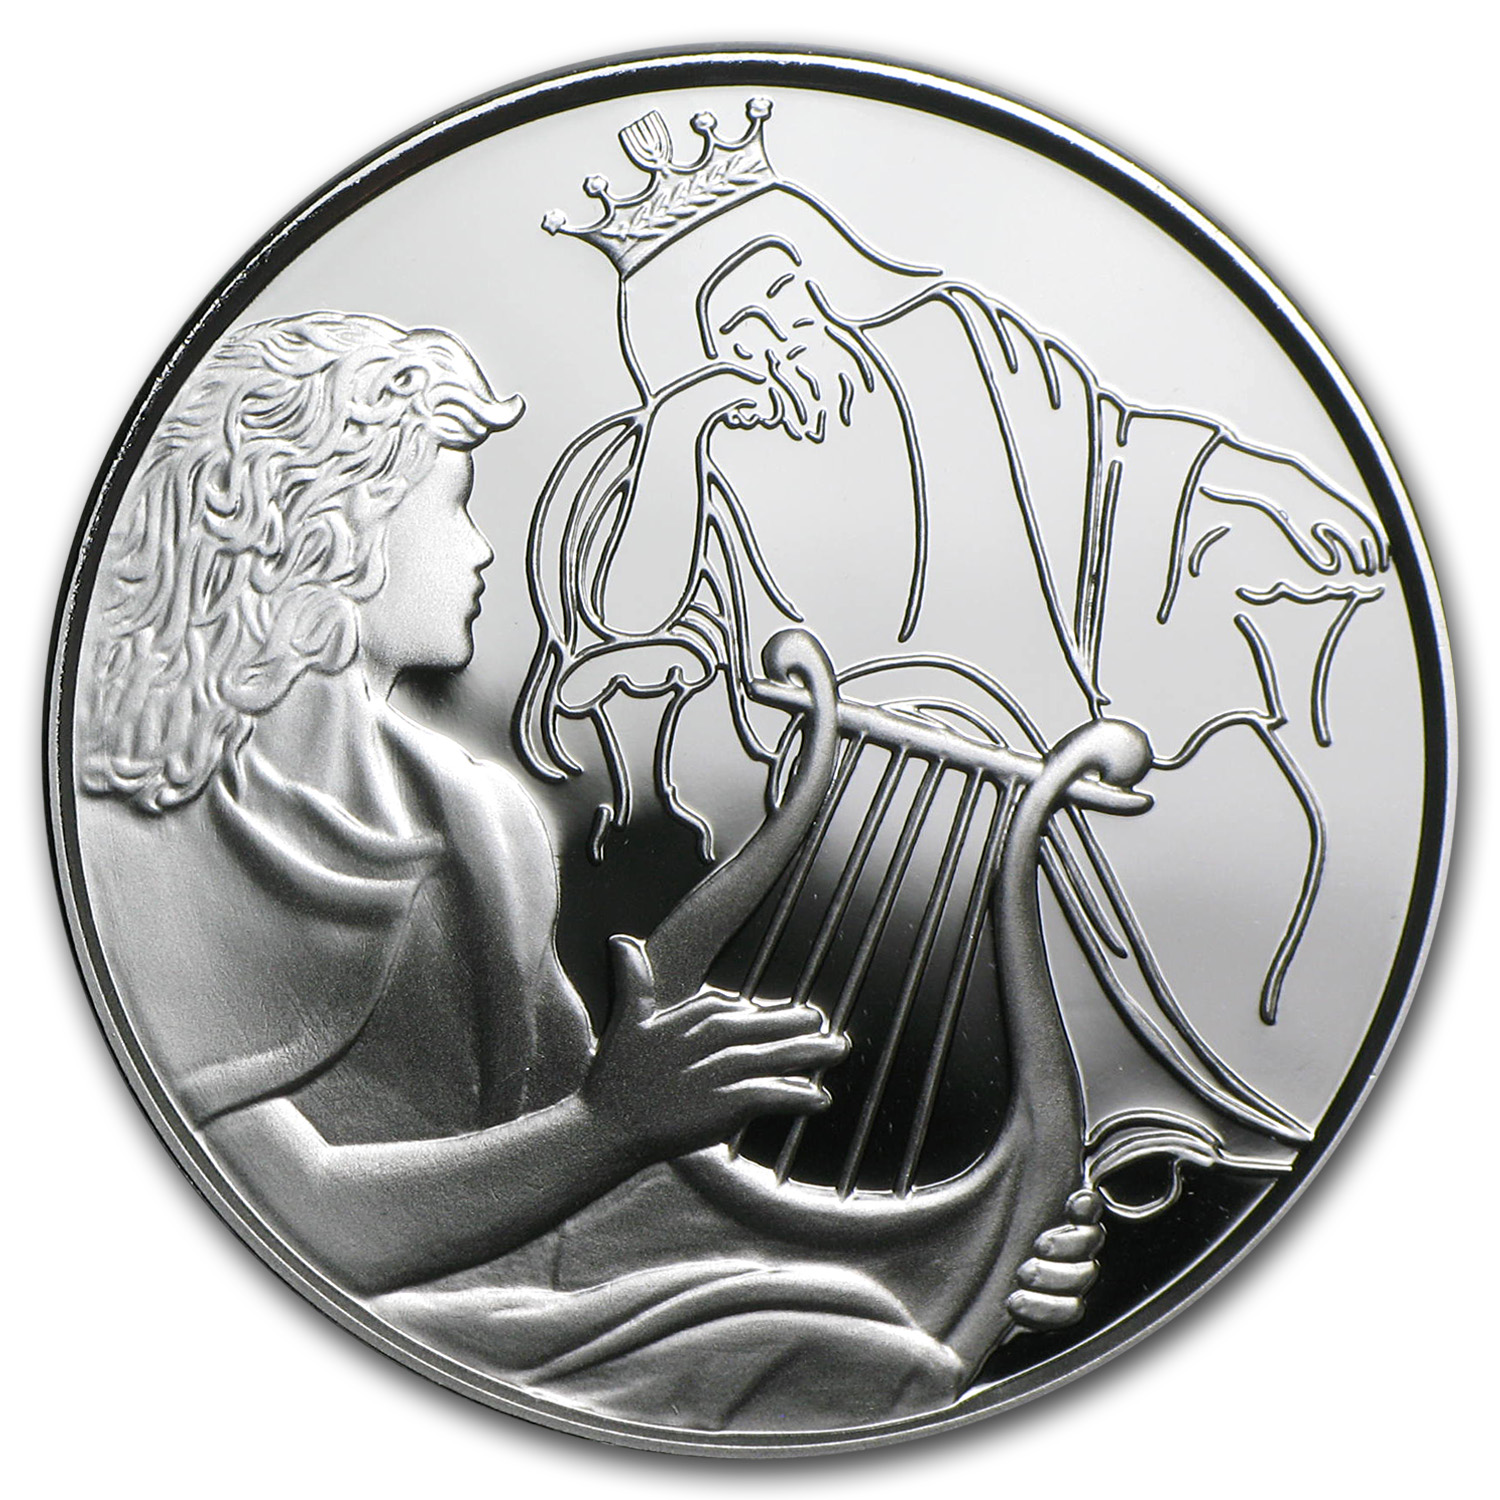 2013 Israel Silver 1 NIS David Playing for Saul Proof